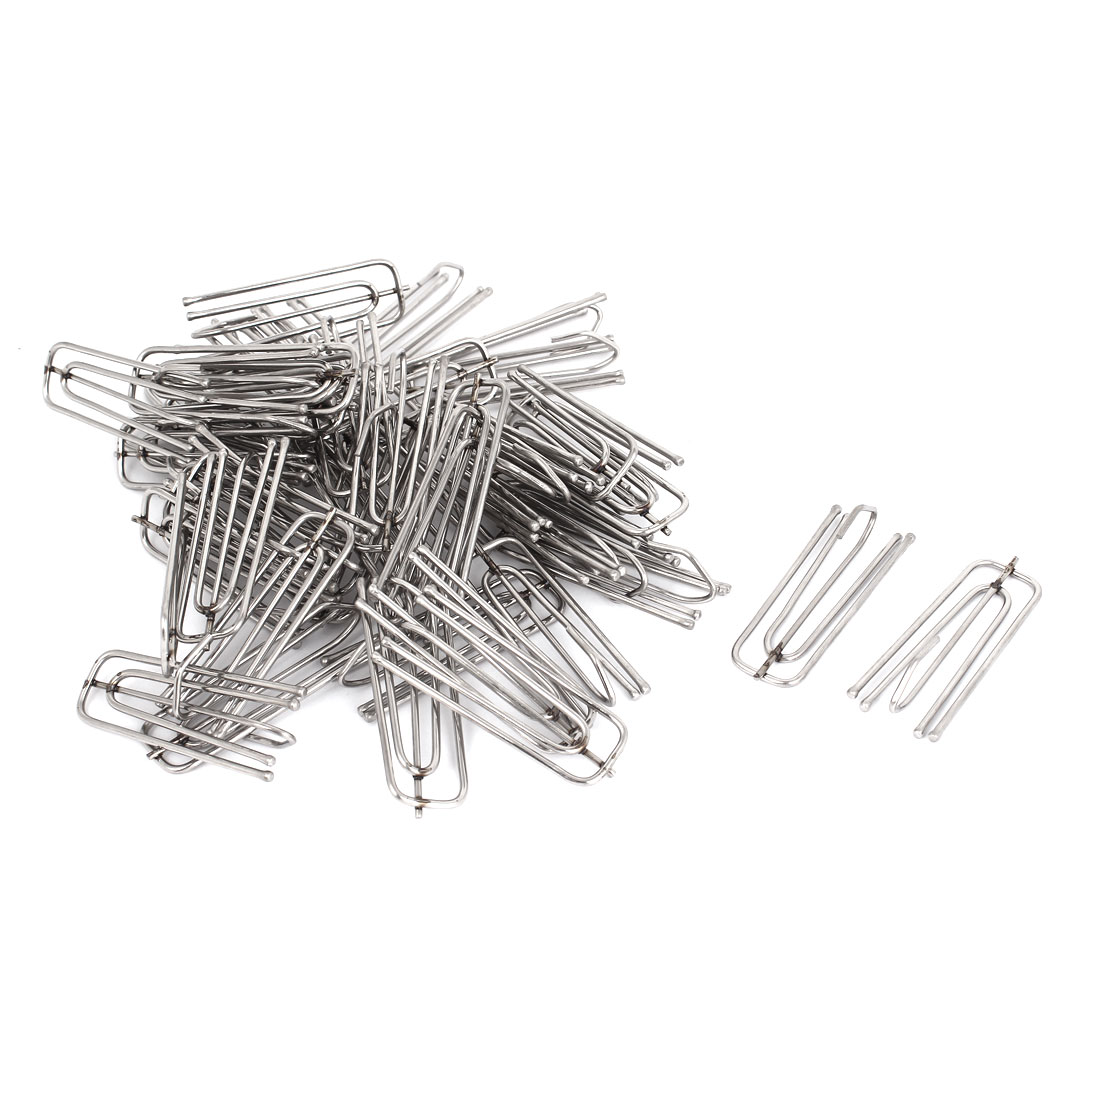 Window Treatment Stainless Steel 4 Prongs Pinch Pleat Drapes Curtain Hooks 50pcs